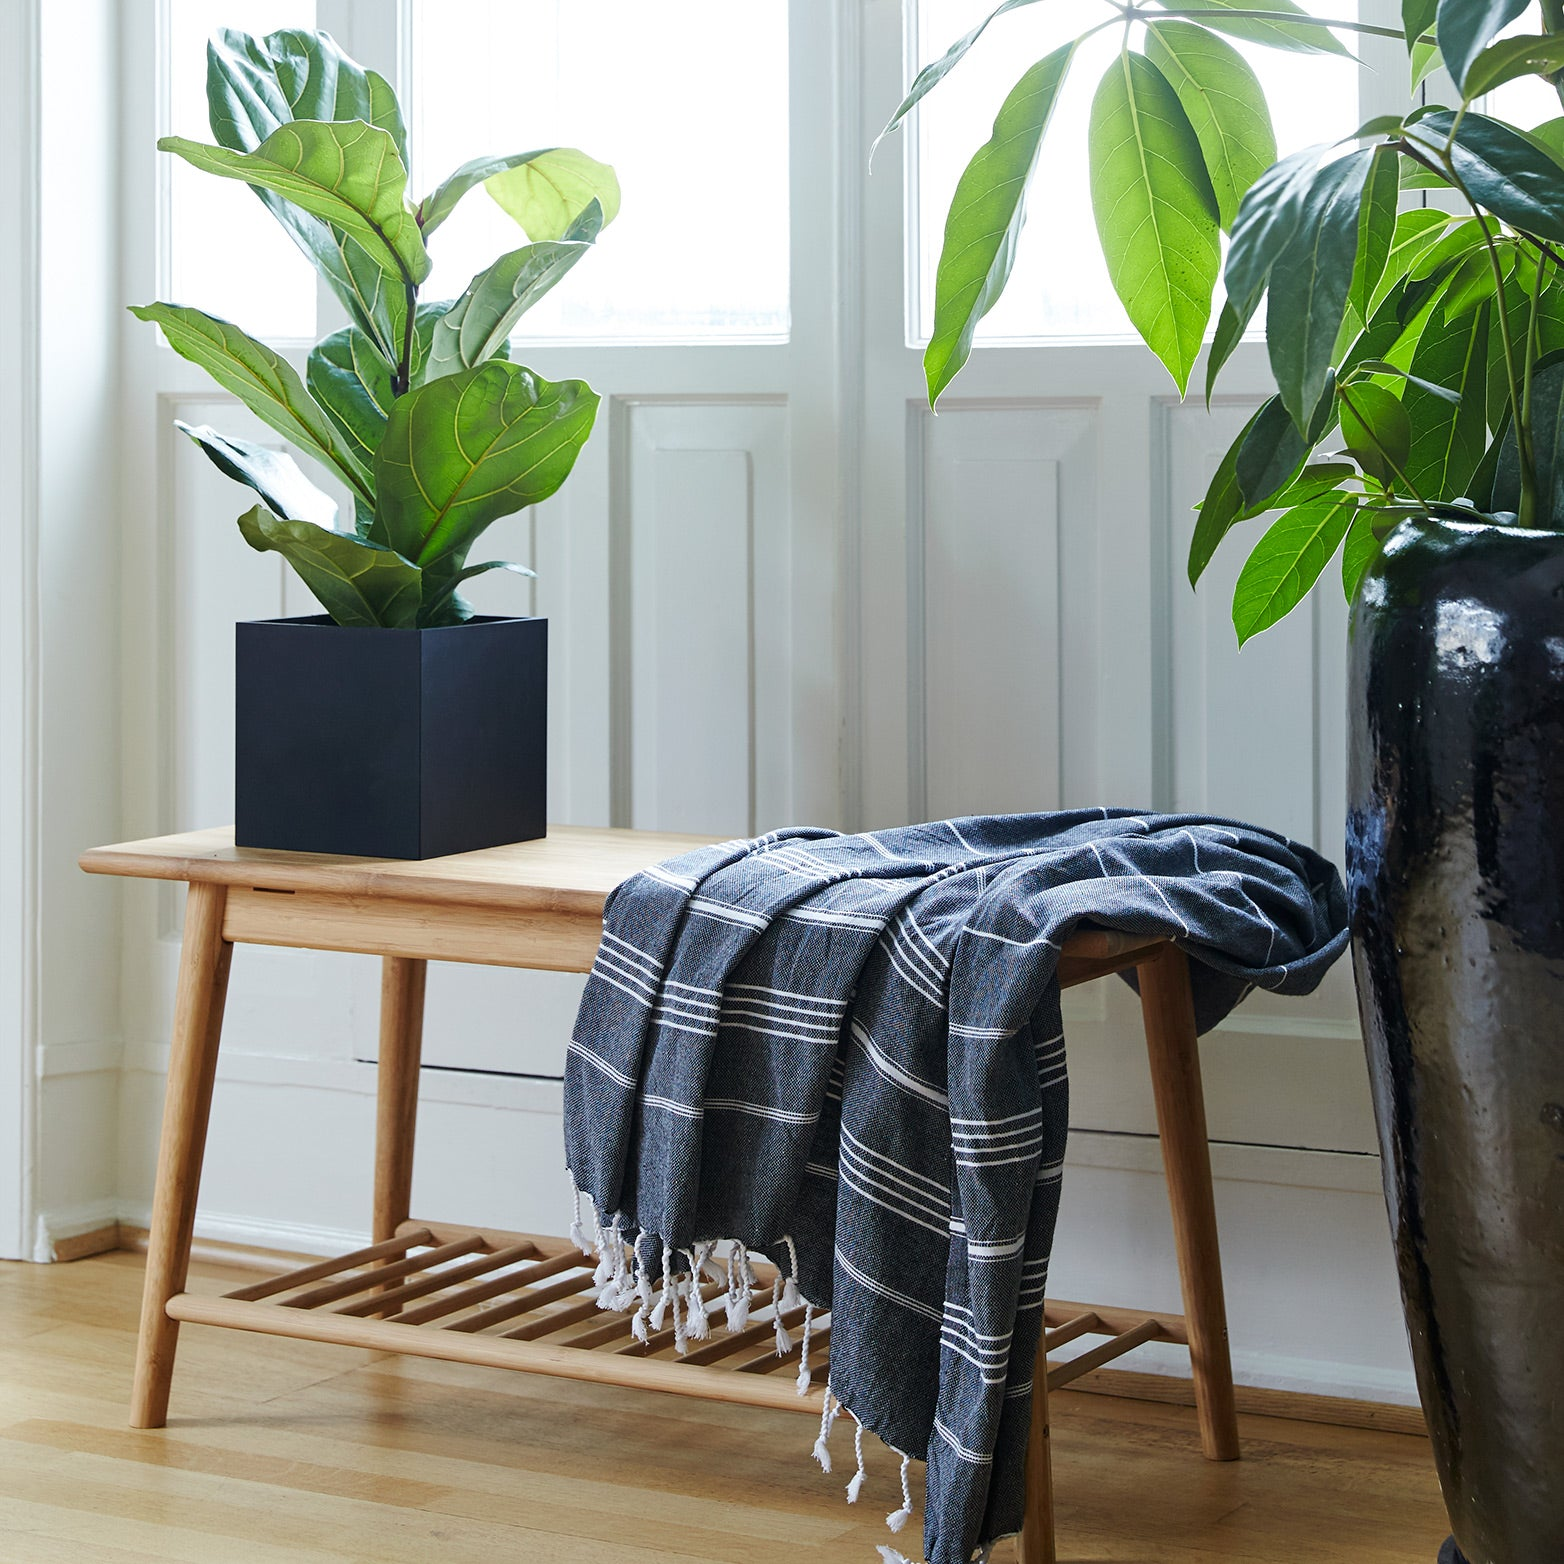 Hallway bench with blanket and large potted plant